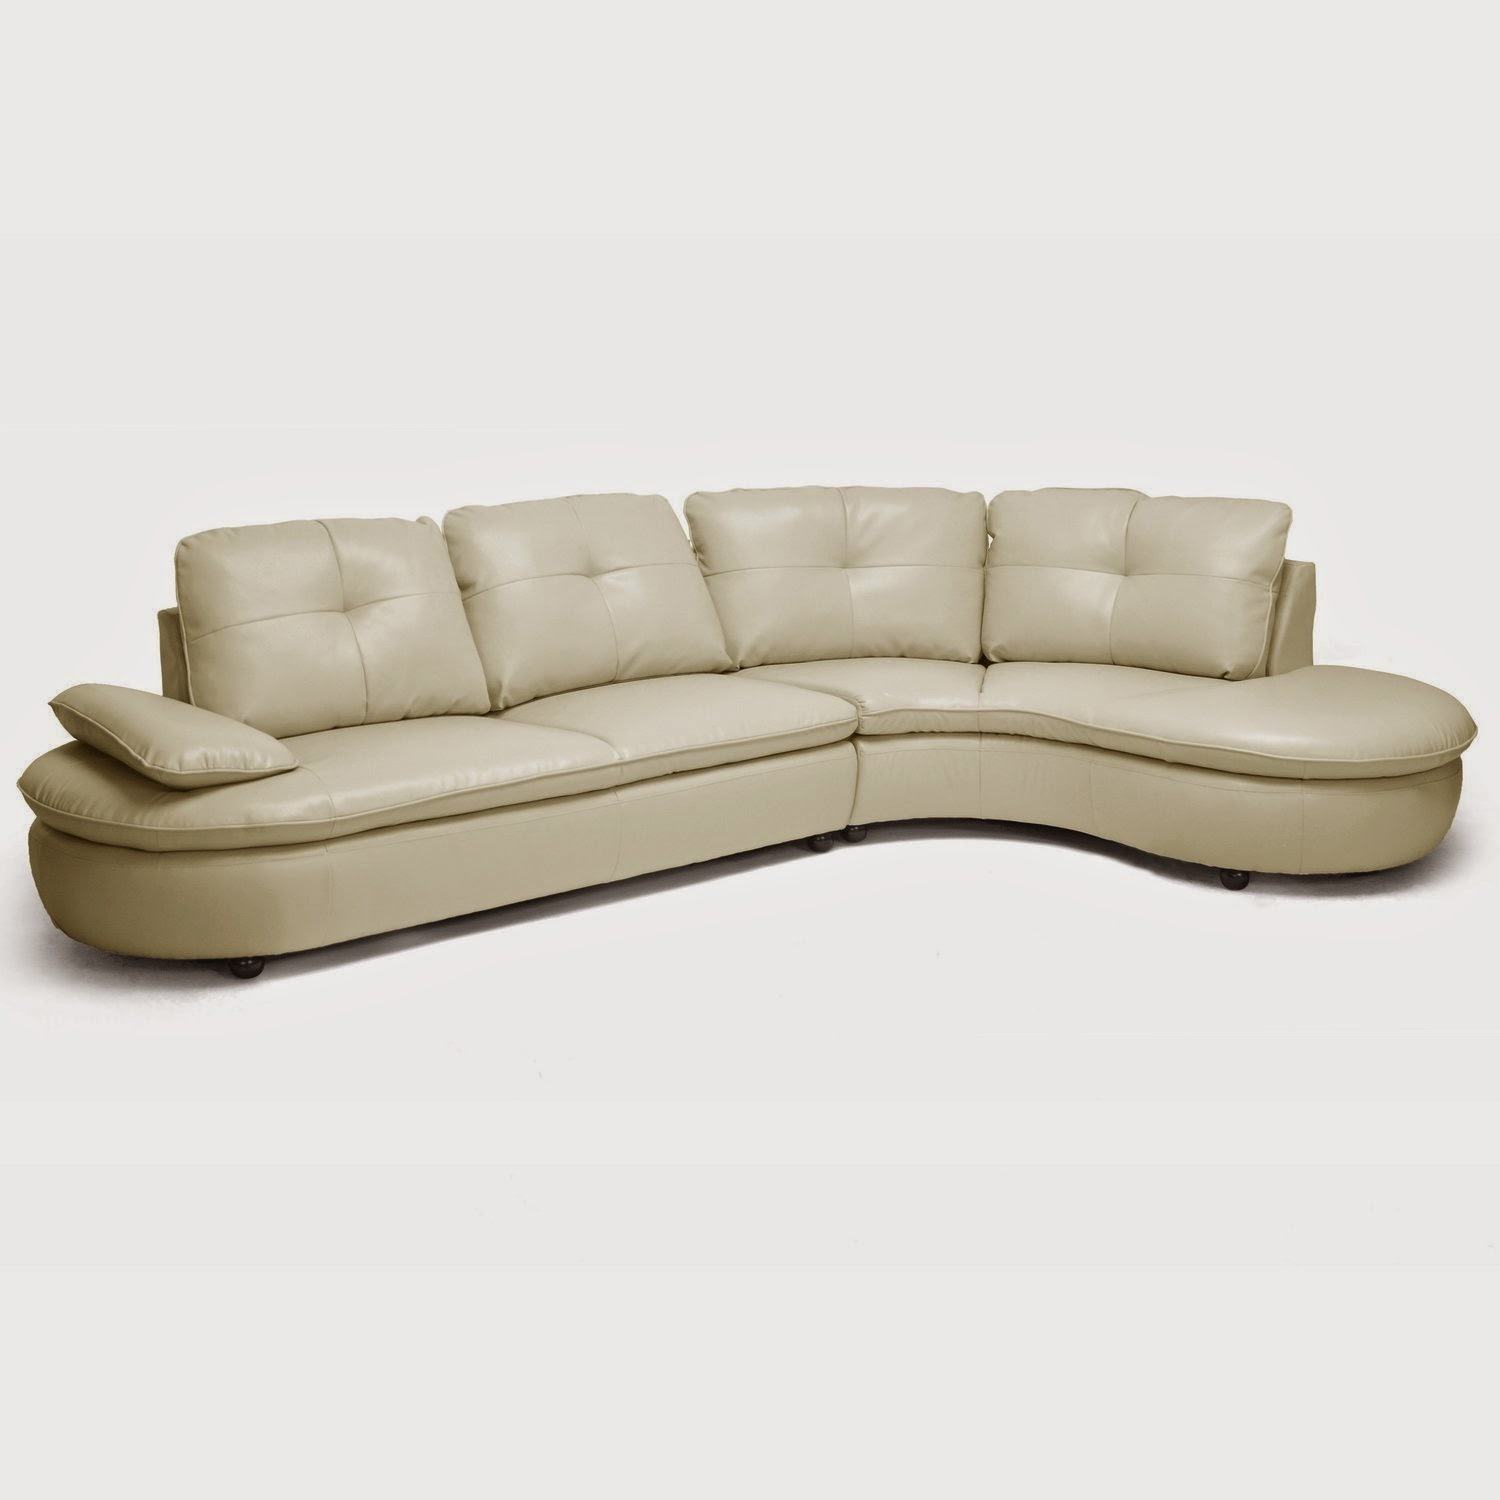 Curved sofa couch for sale curved contemporary sofa for Contemporary sofa